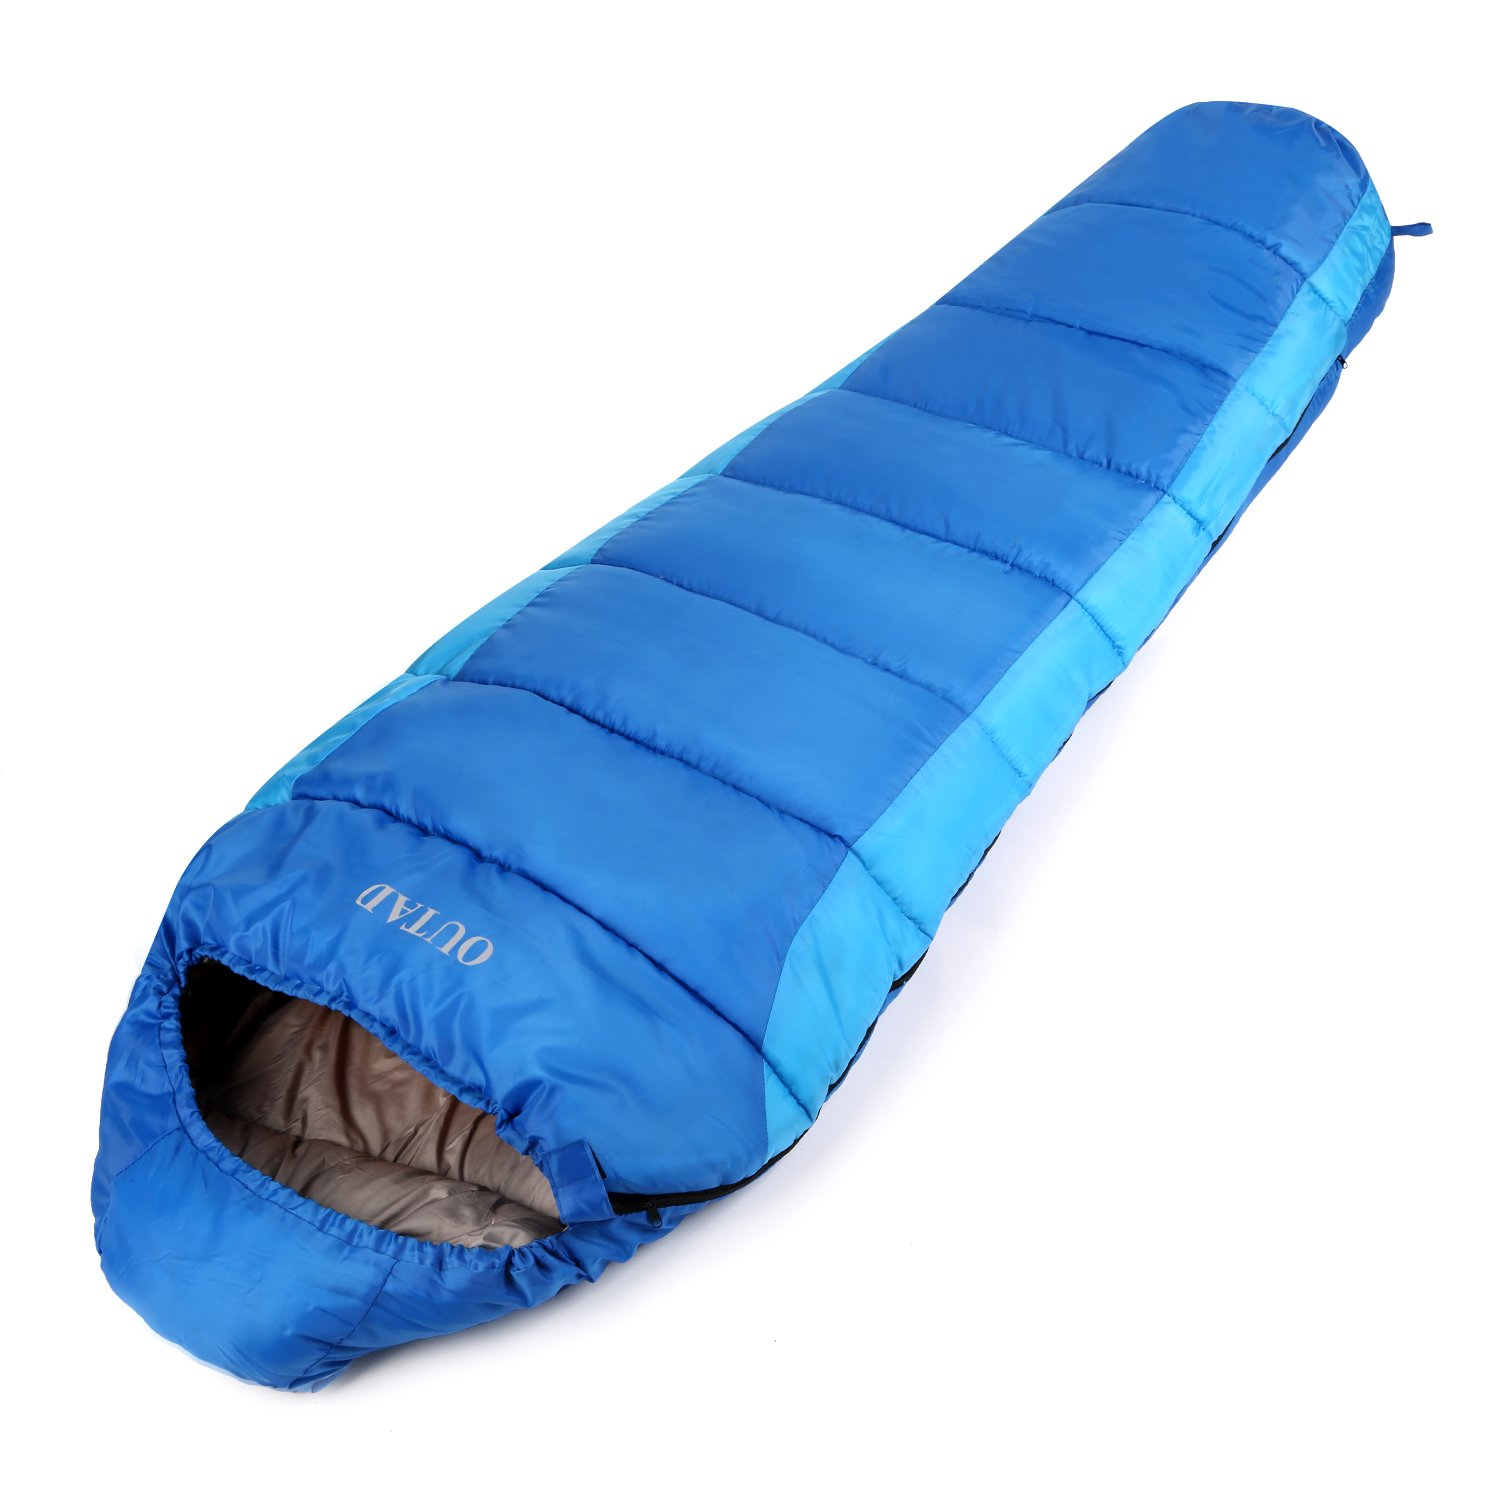 OUTAD Outdoor Mummy 40-50 Degree Portable Sleeping Bag for Camping Hiking Backpacking